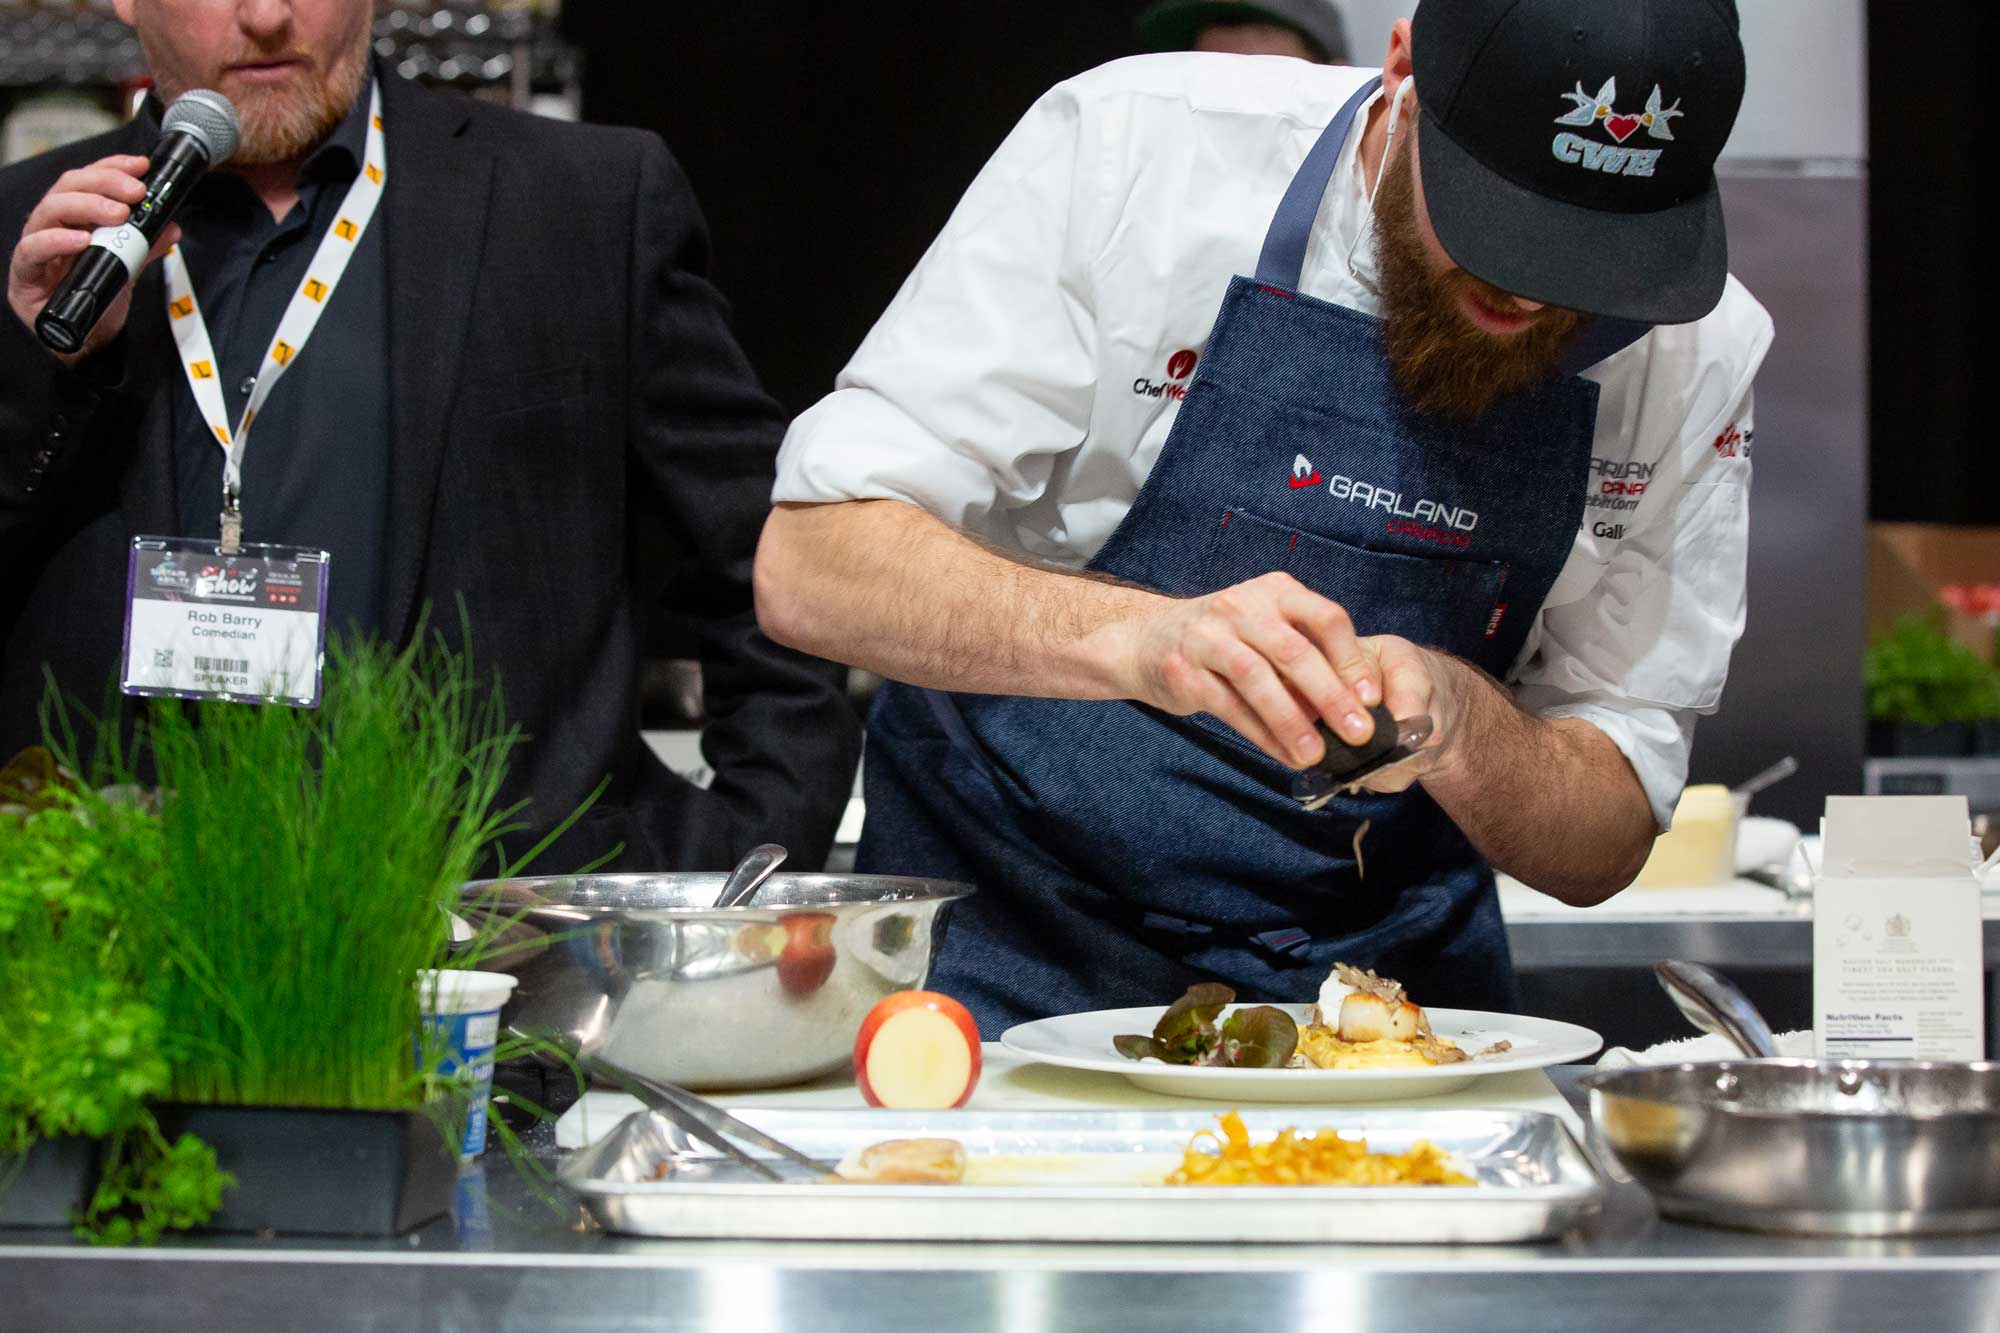 RCShow-Garland-Culinary-Competition